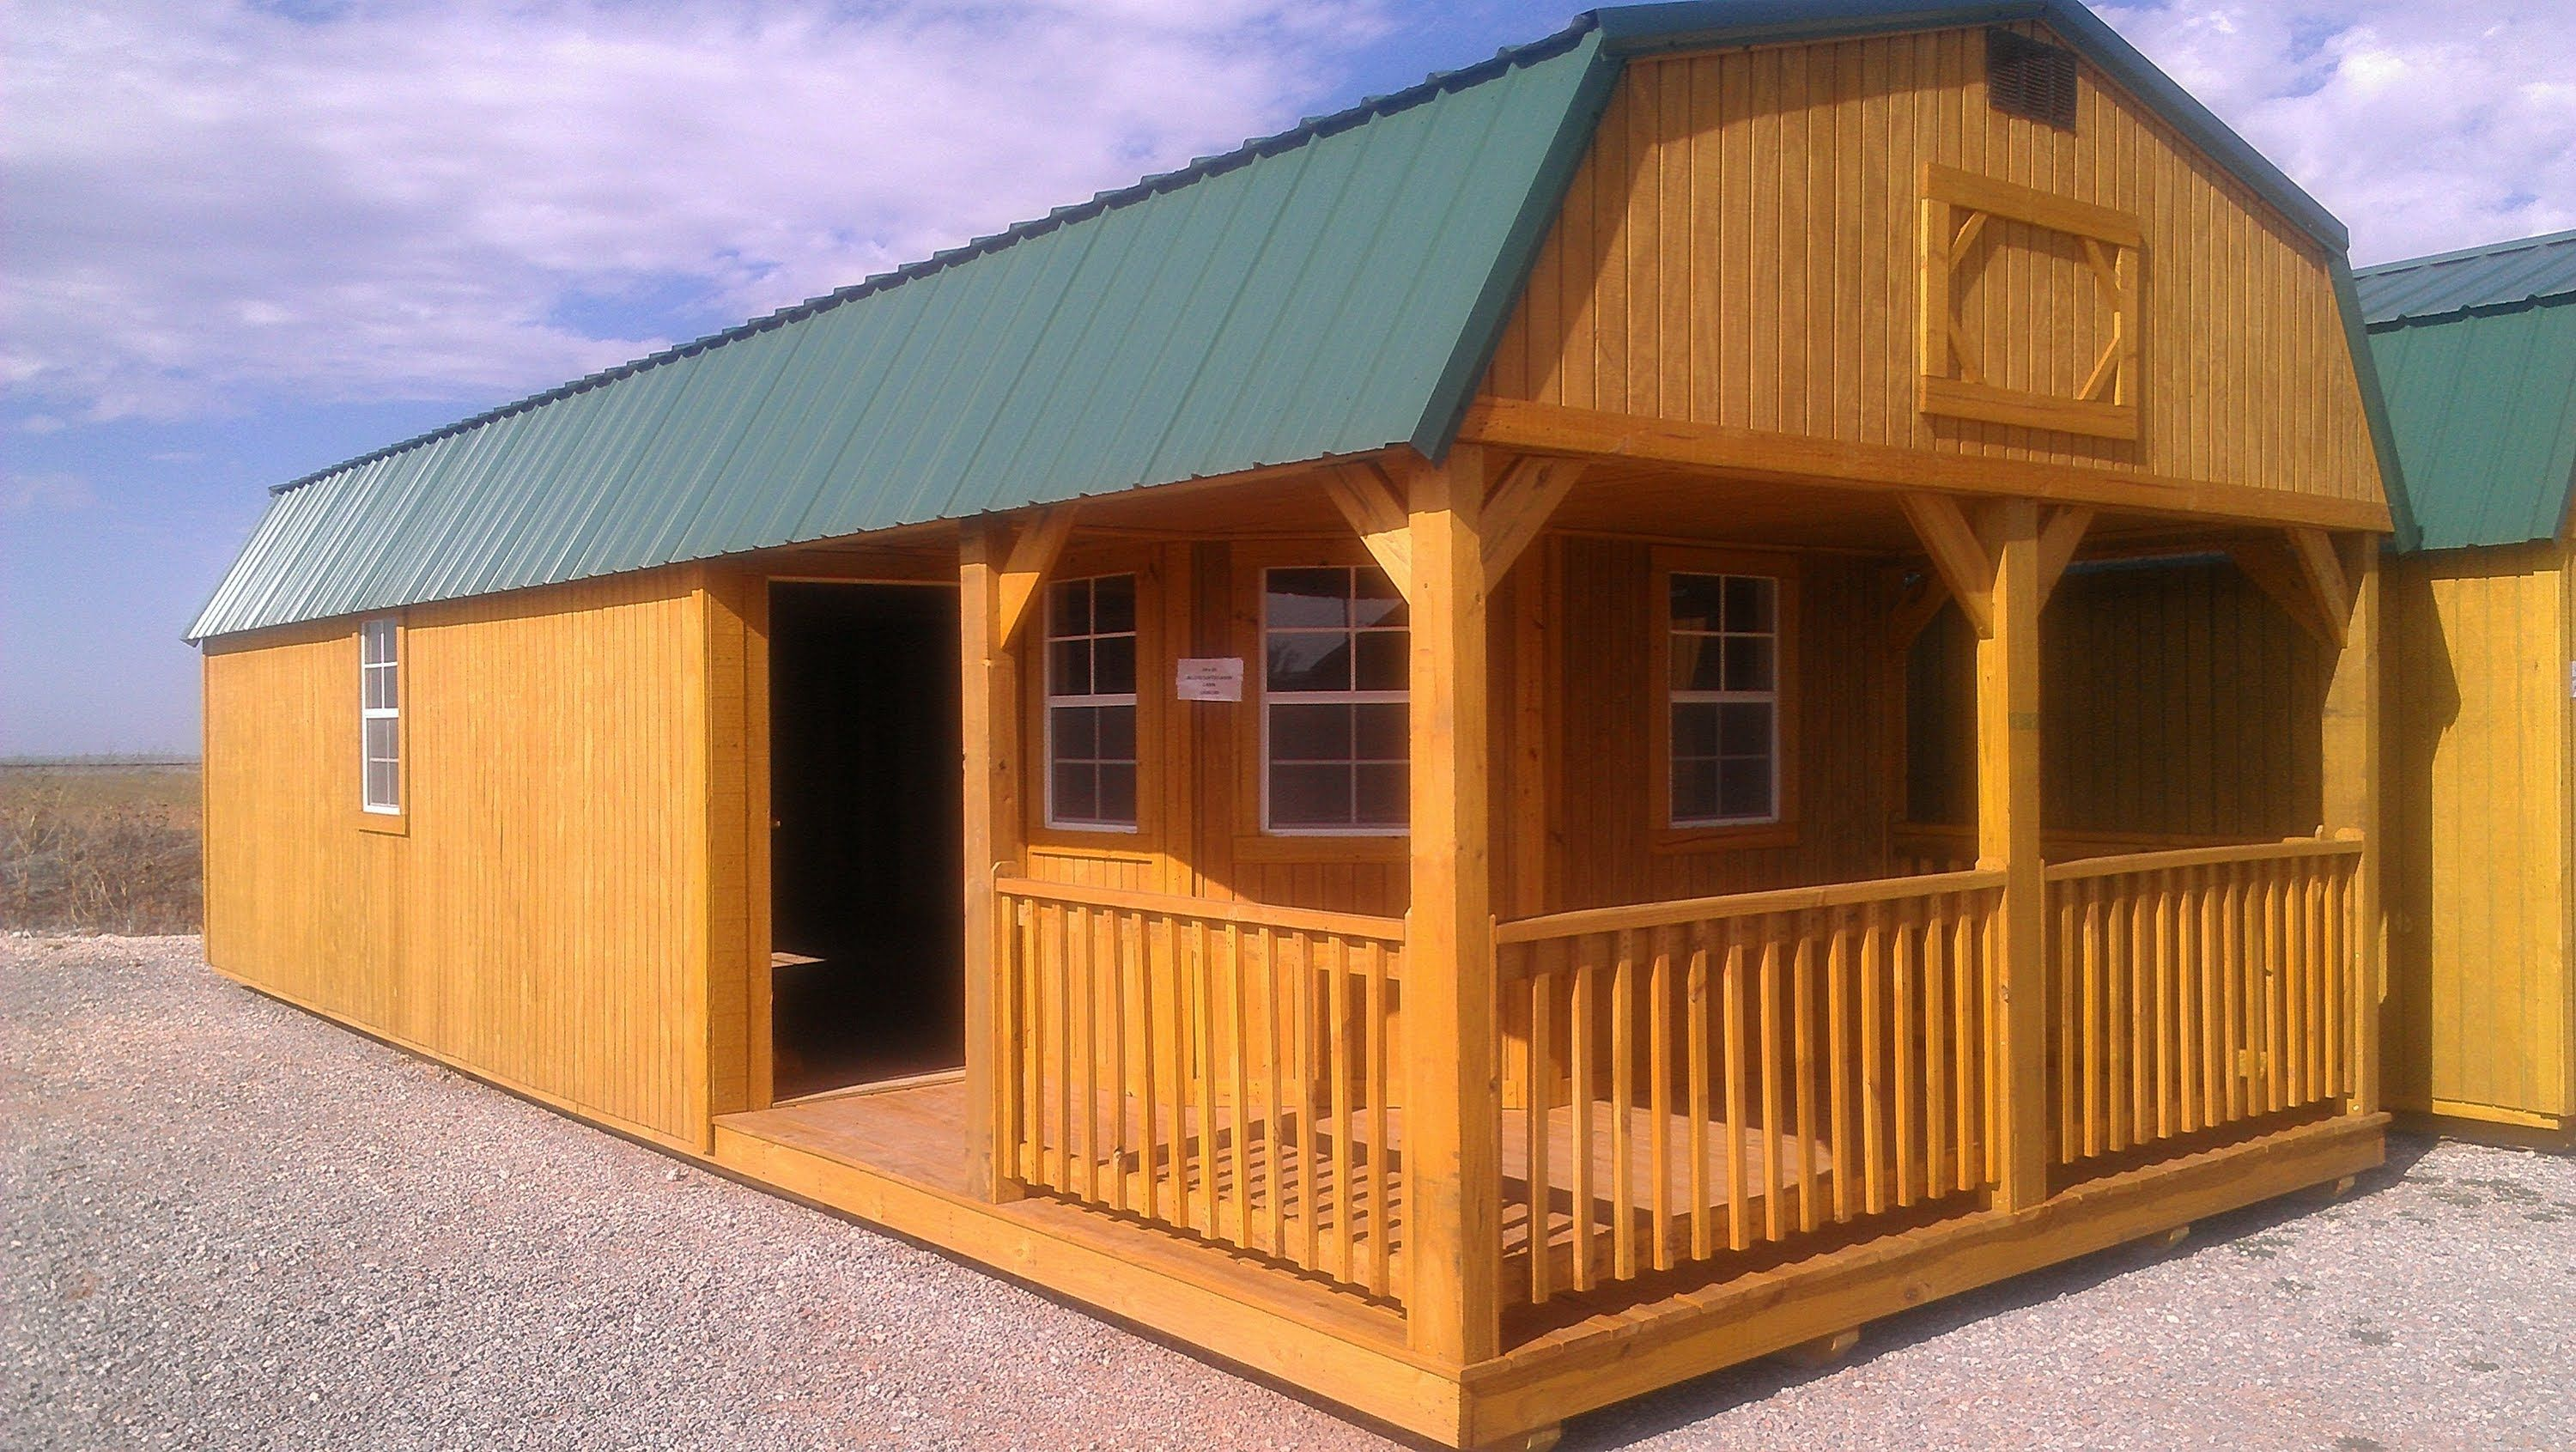 Prebuilt Homes Off Grid Cabin Tiny House Options You